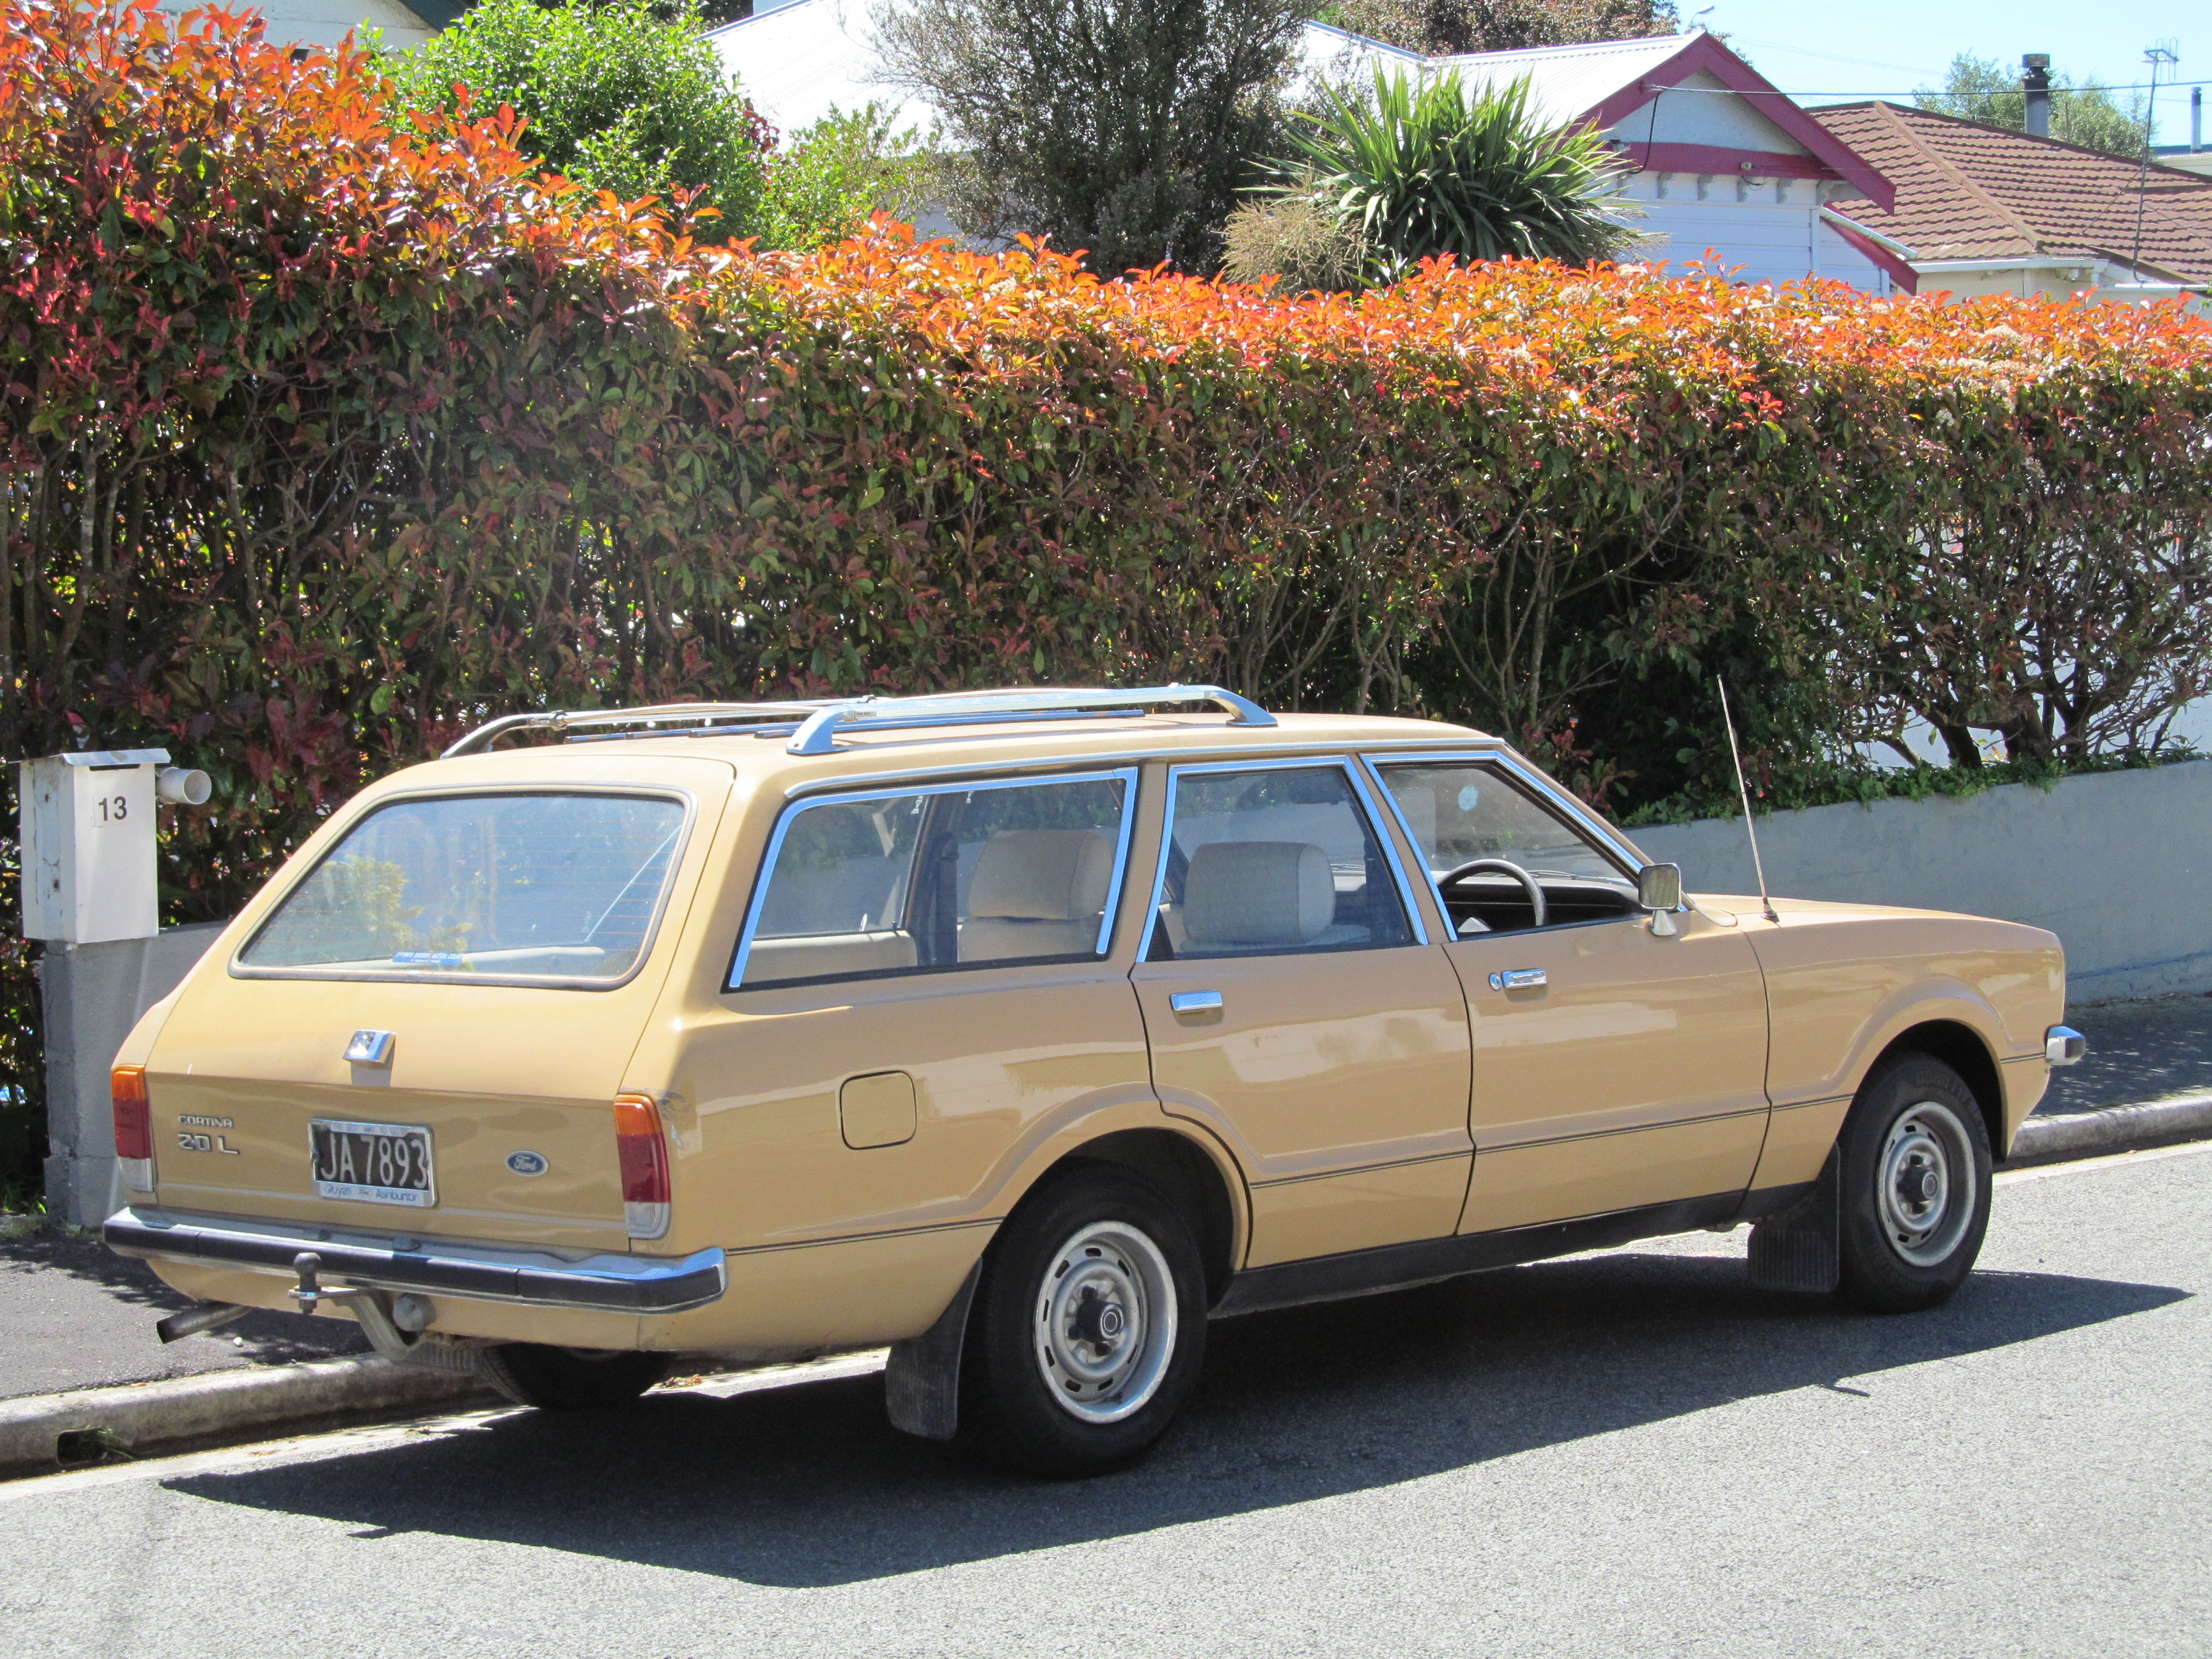 file:1978 ford cortina 2.0l estate (11186039584) - wikimedia